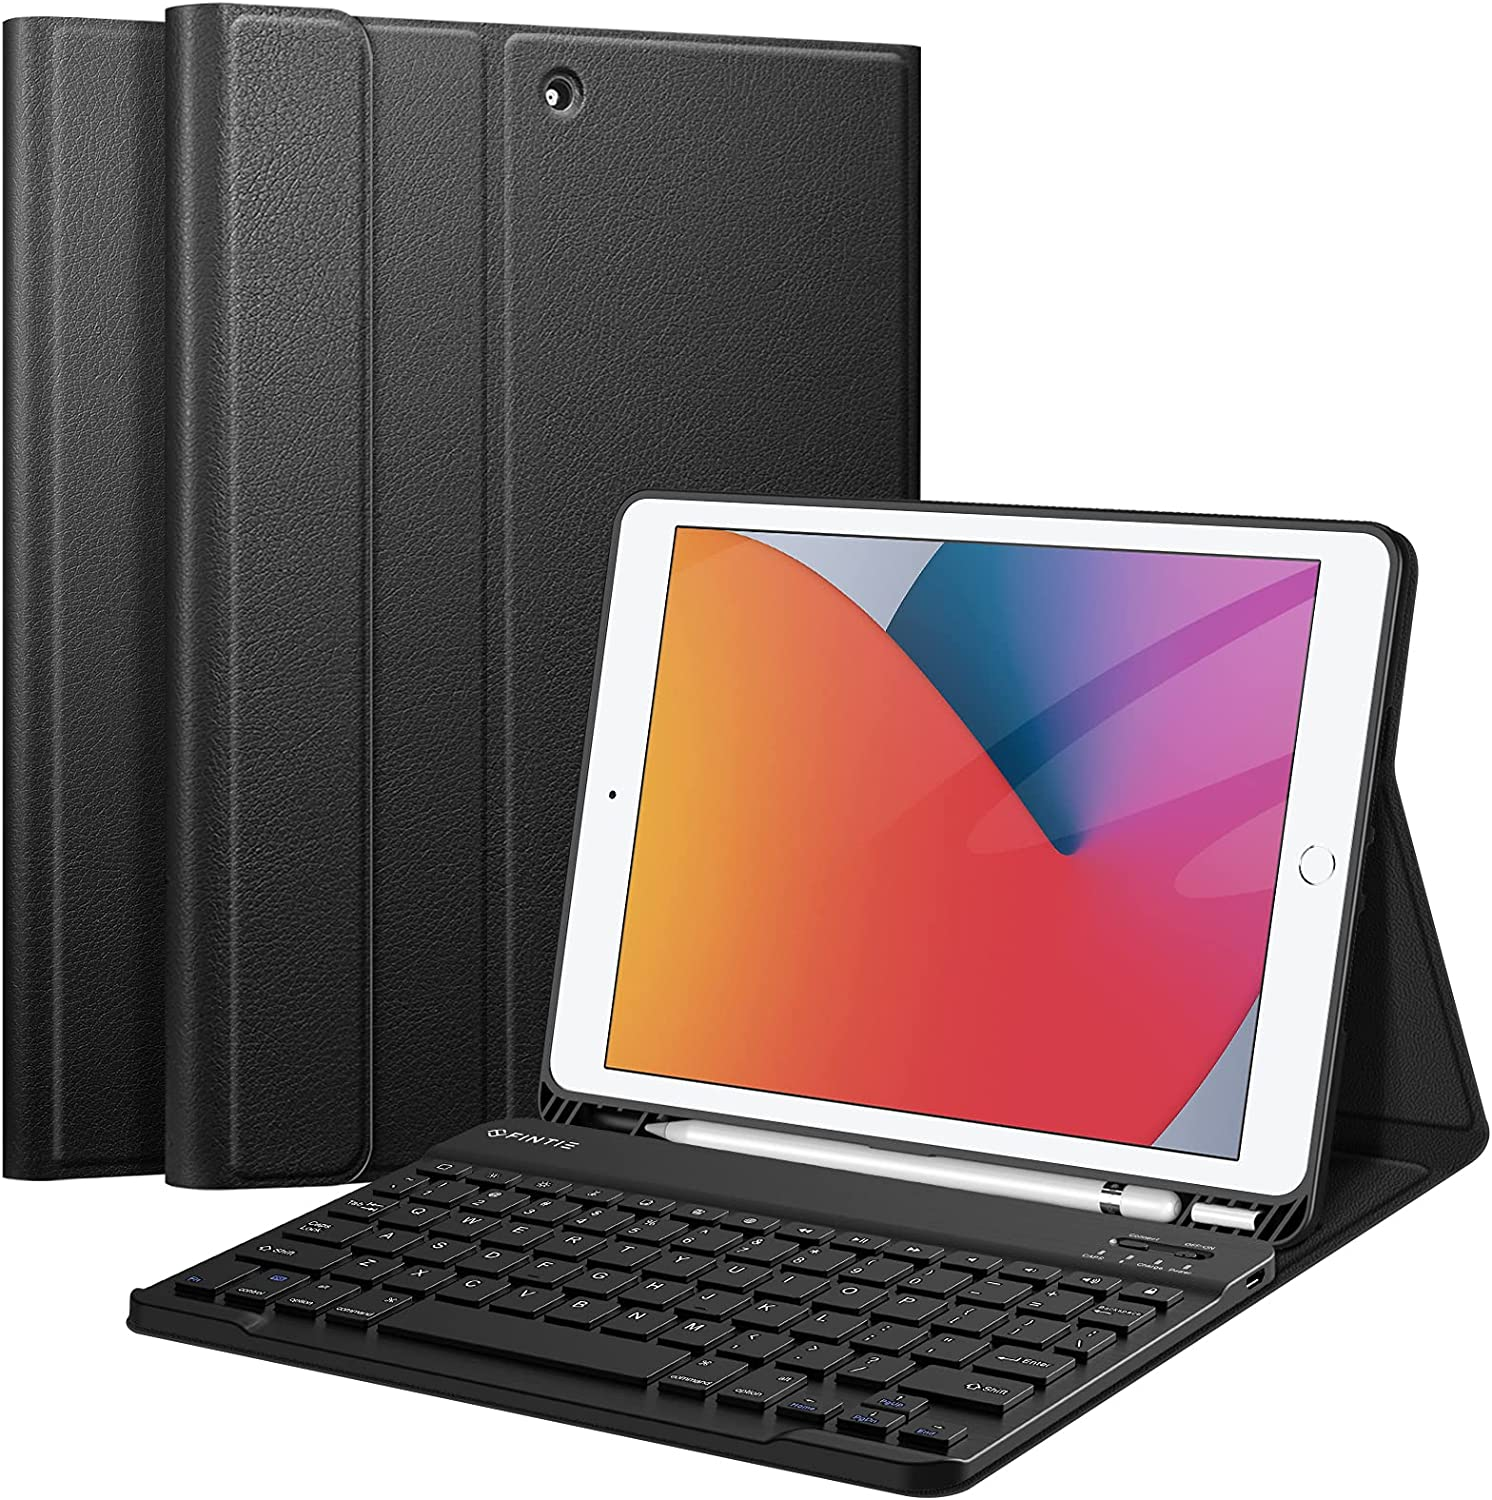 Fintie Keyboard Case for iPad 9th / 8th / 7th Generation (2021/2020/2019) 10.2 Inch, Soft TPU Back Stand Cover with Pencil Holder, Magnetically Detachable Wireless Bluetooth Keyboard, Black